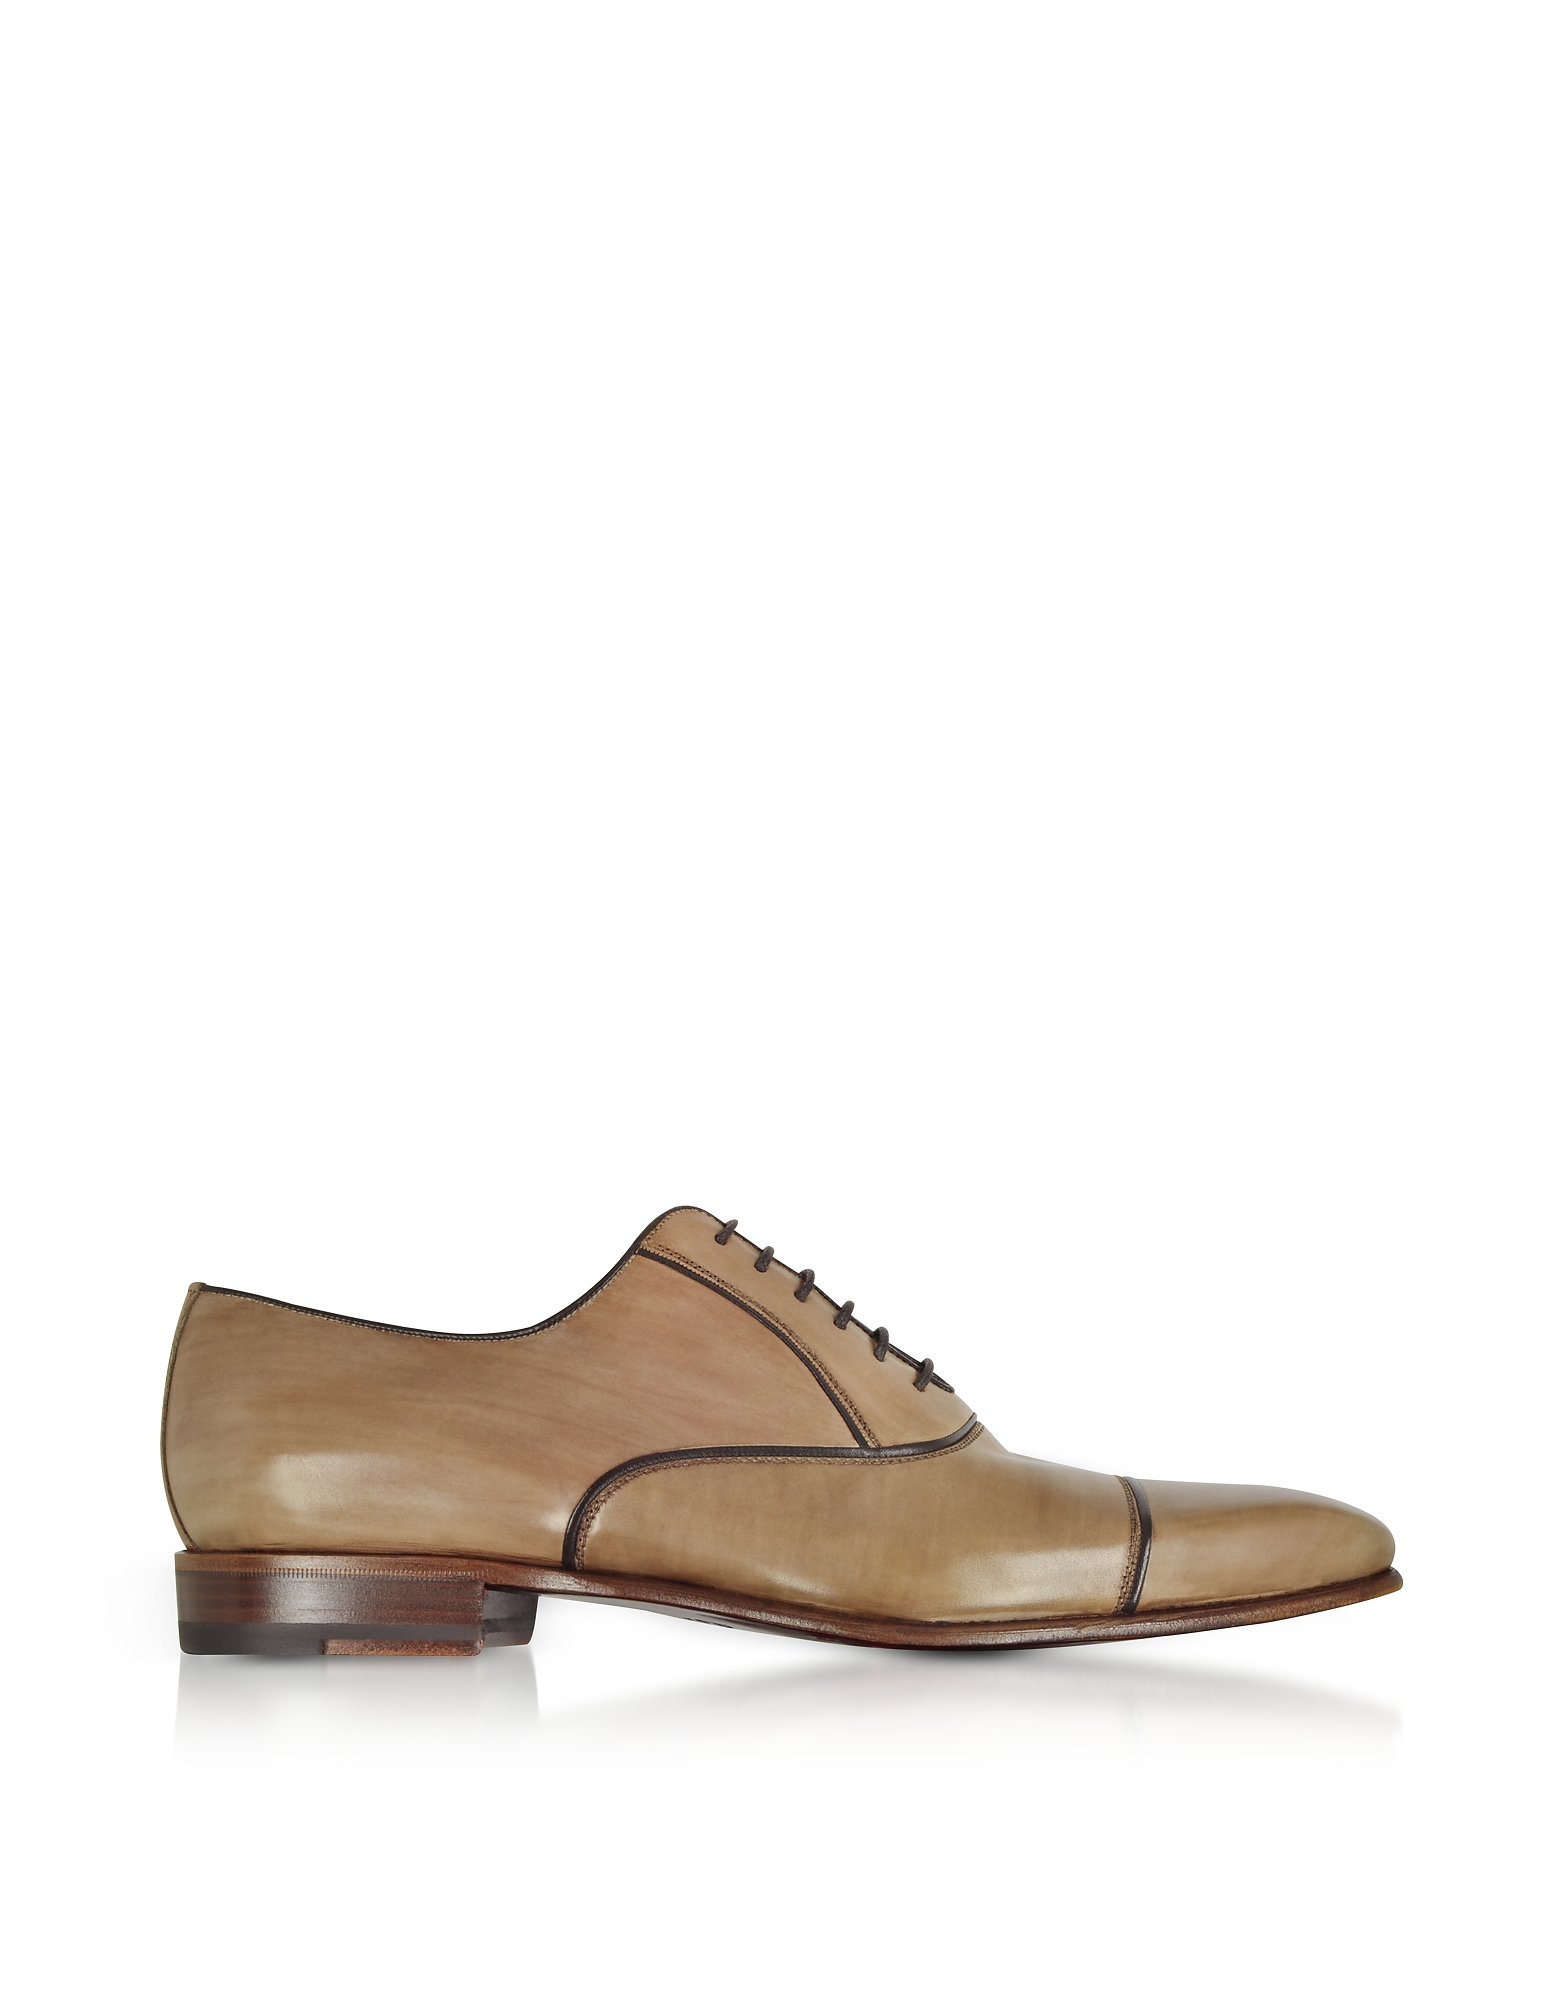 Image of Fratelli Borgioli Designer Shoes, Cenere Brown Leather Oxford Shoes